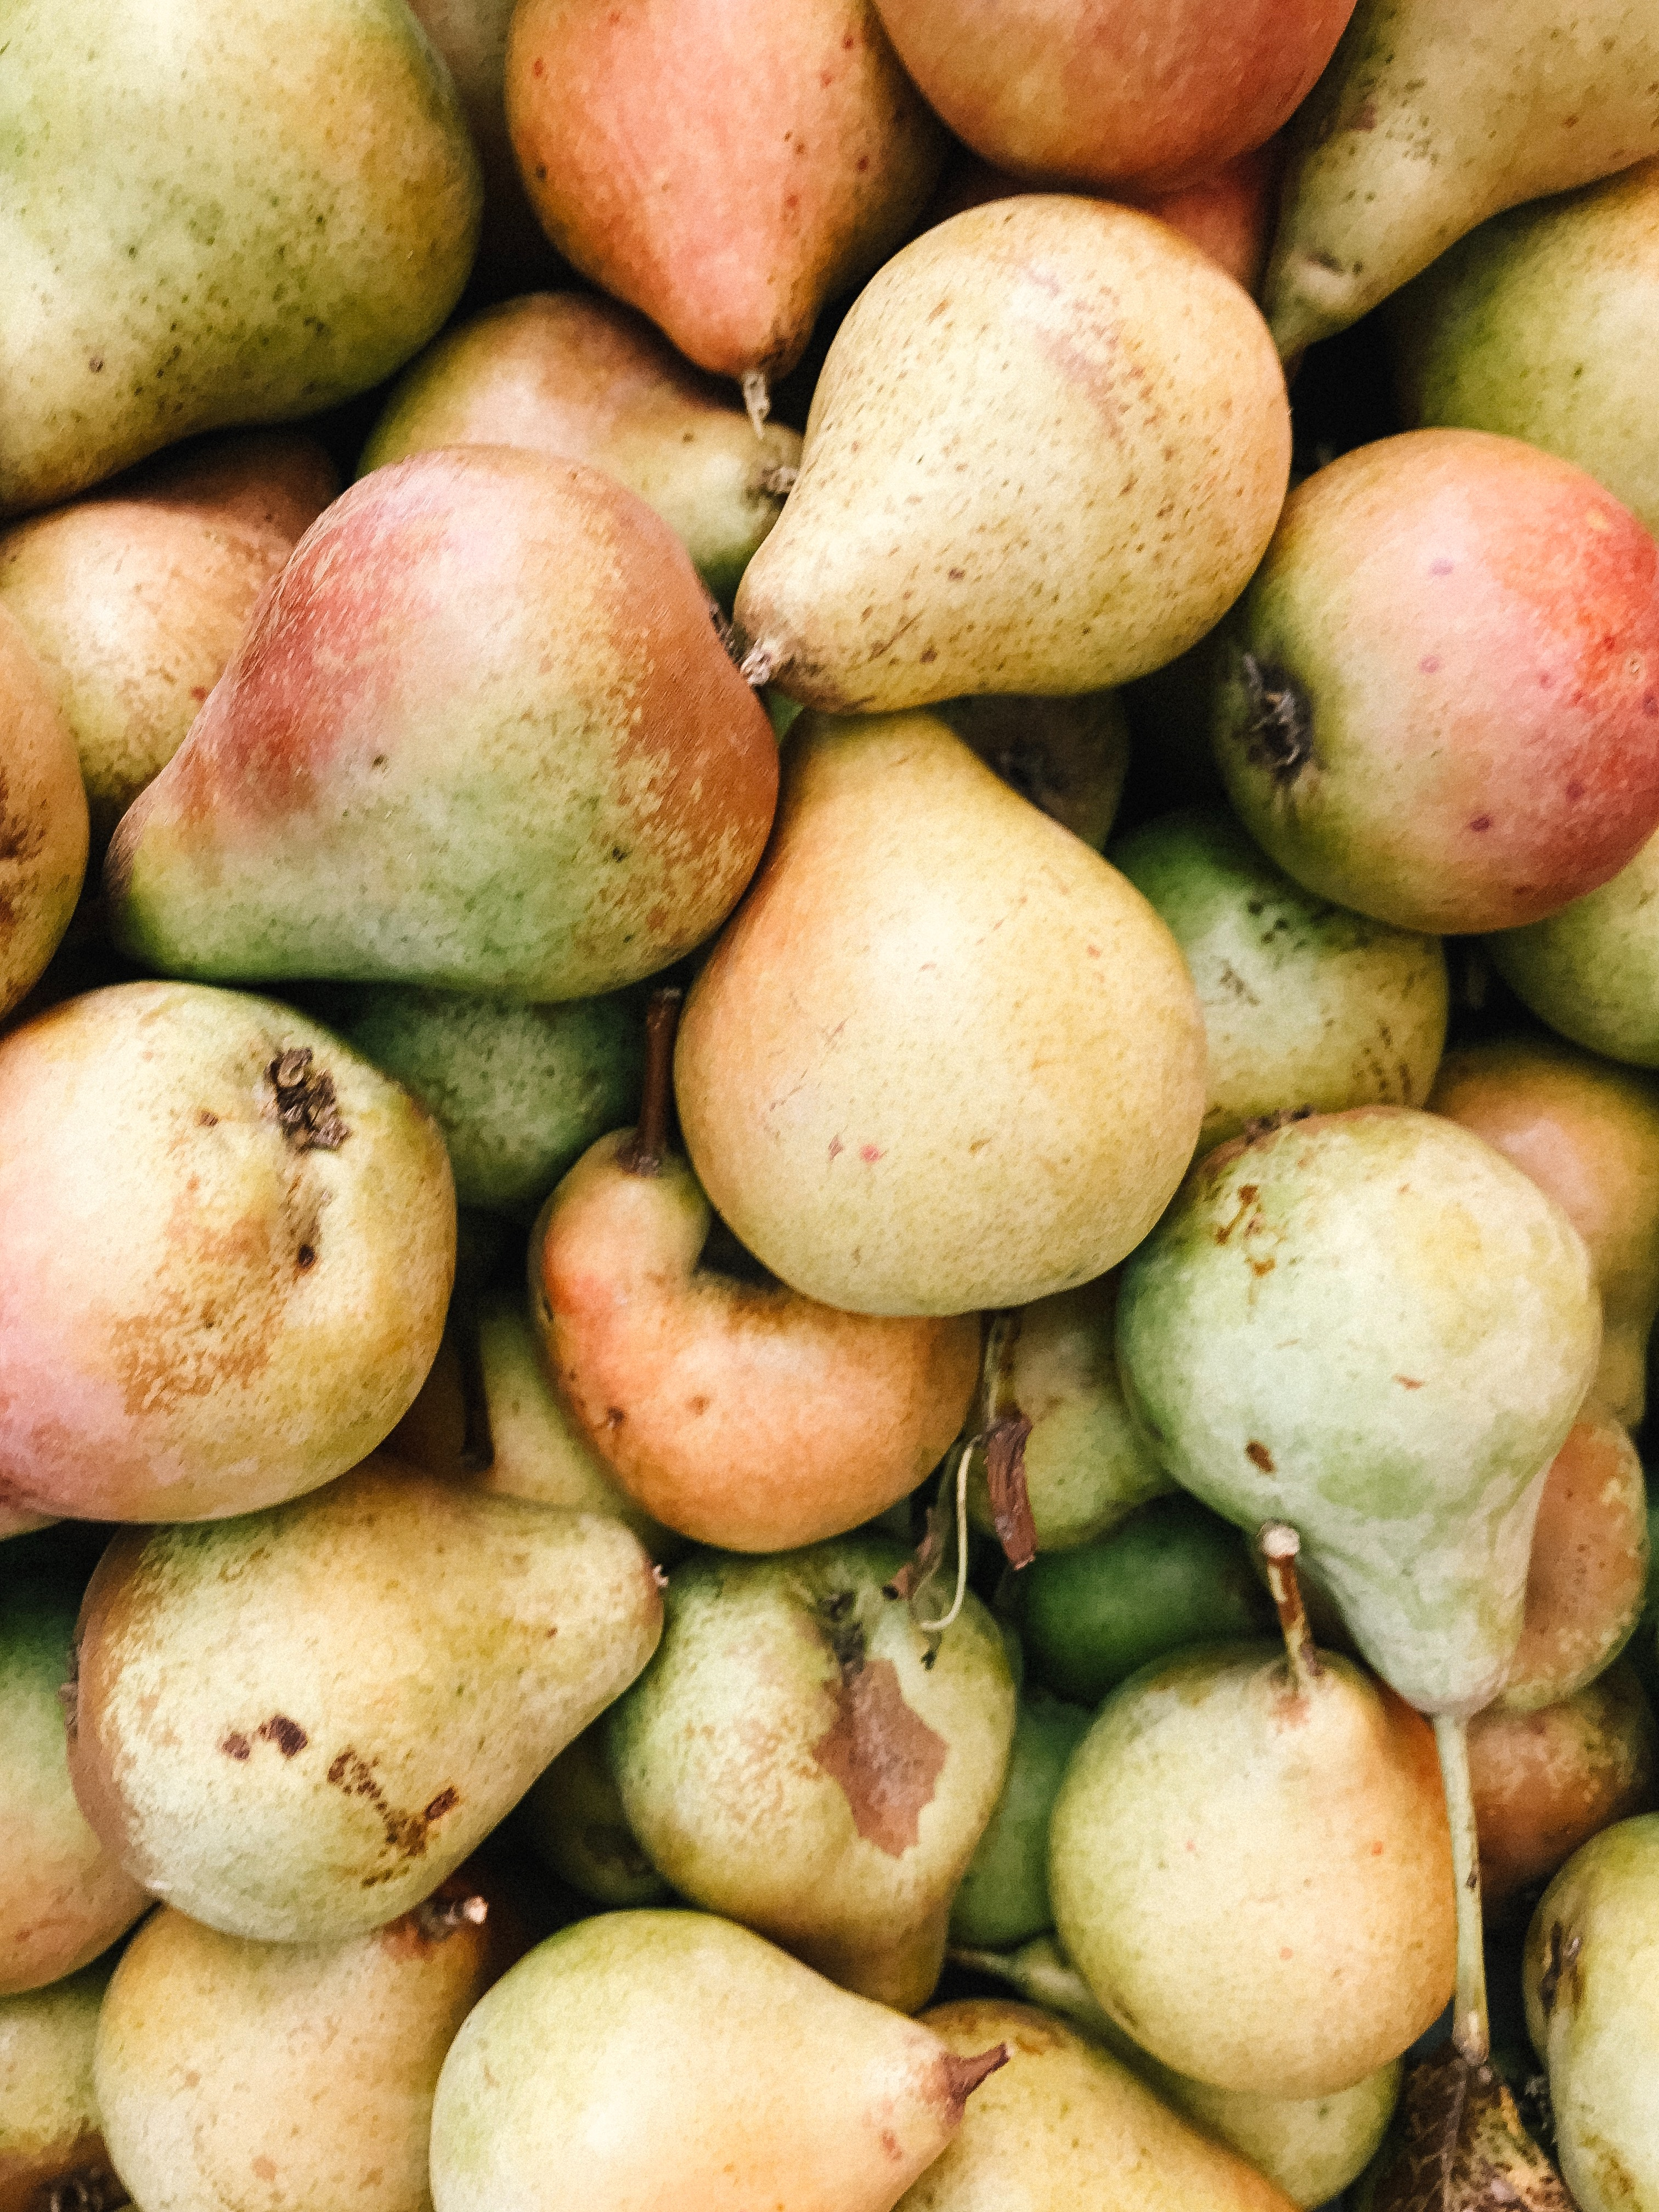 #FantasticFruit – It's A Perfect Pear